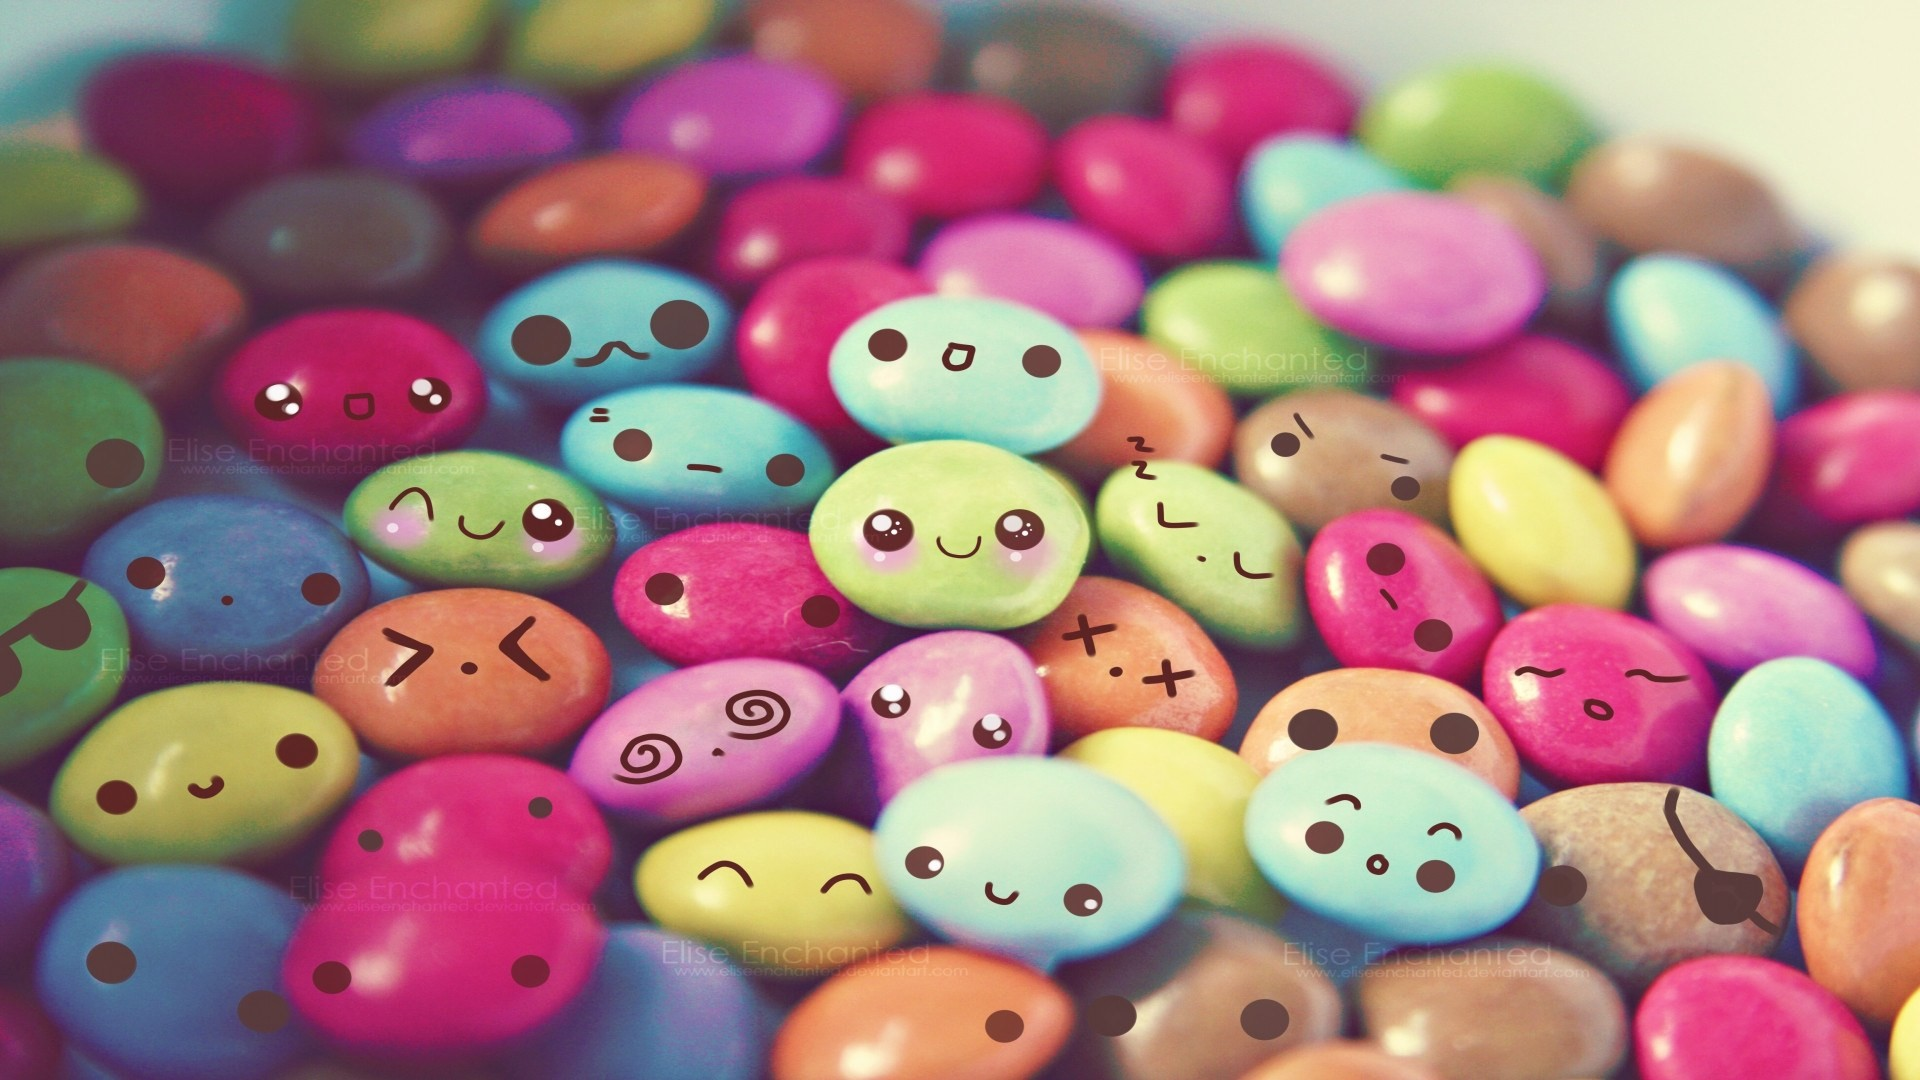 Res: 1920x1080, Download Cute HD Desktop Wallpapers for Widescreen, High Definition, Mobile